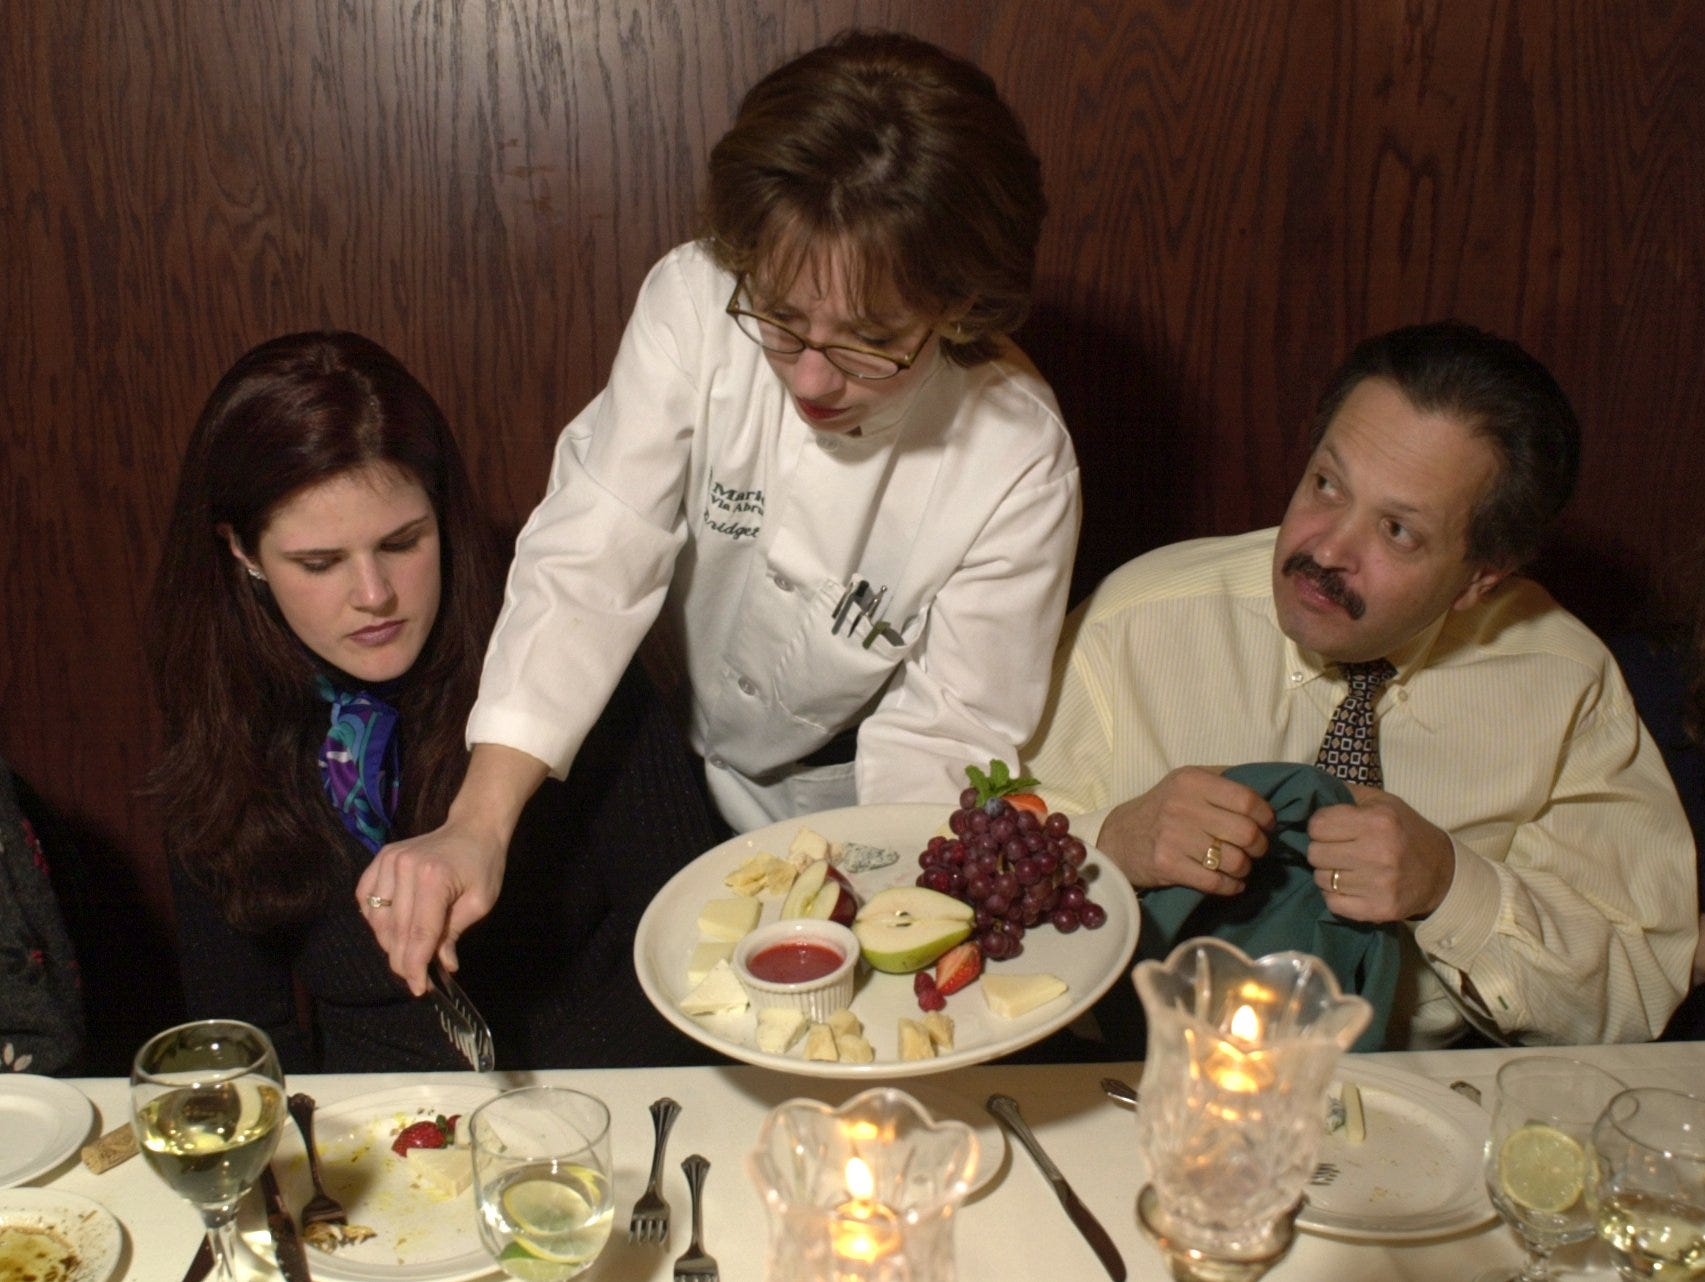 Mario's Via Abruzzi server Bridget Bridsom, center, serves the cheese course to Susan Prinzing. left, and Allen Bernstein in 2001.